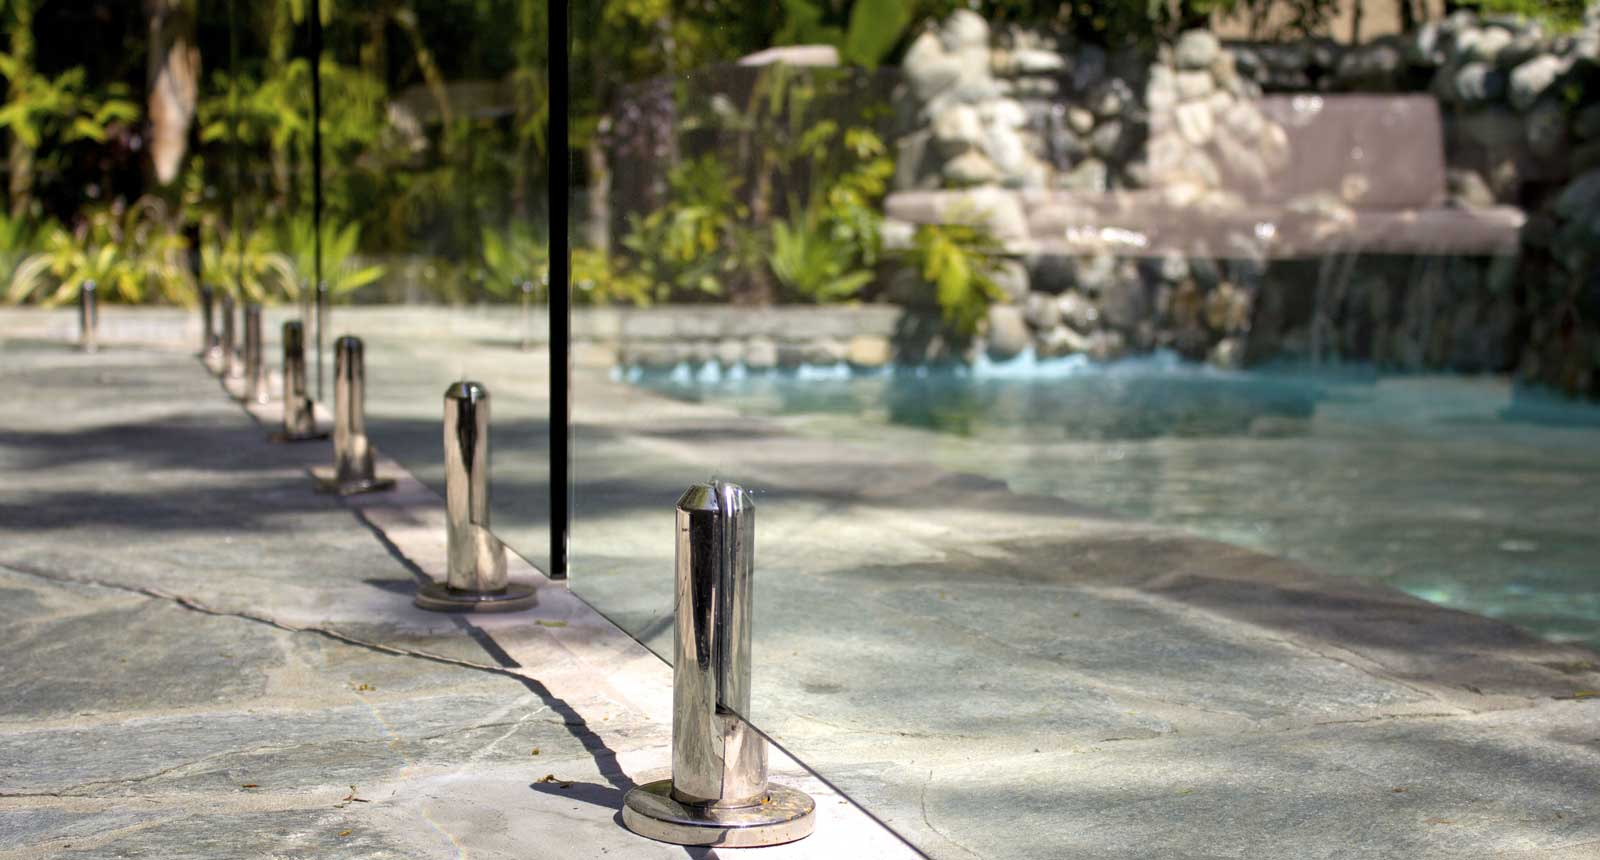 Glass Pool Fence and Railing Systems - Styleguard Systems